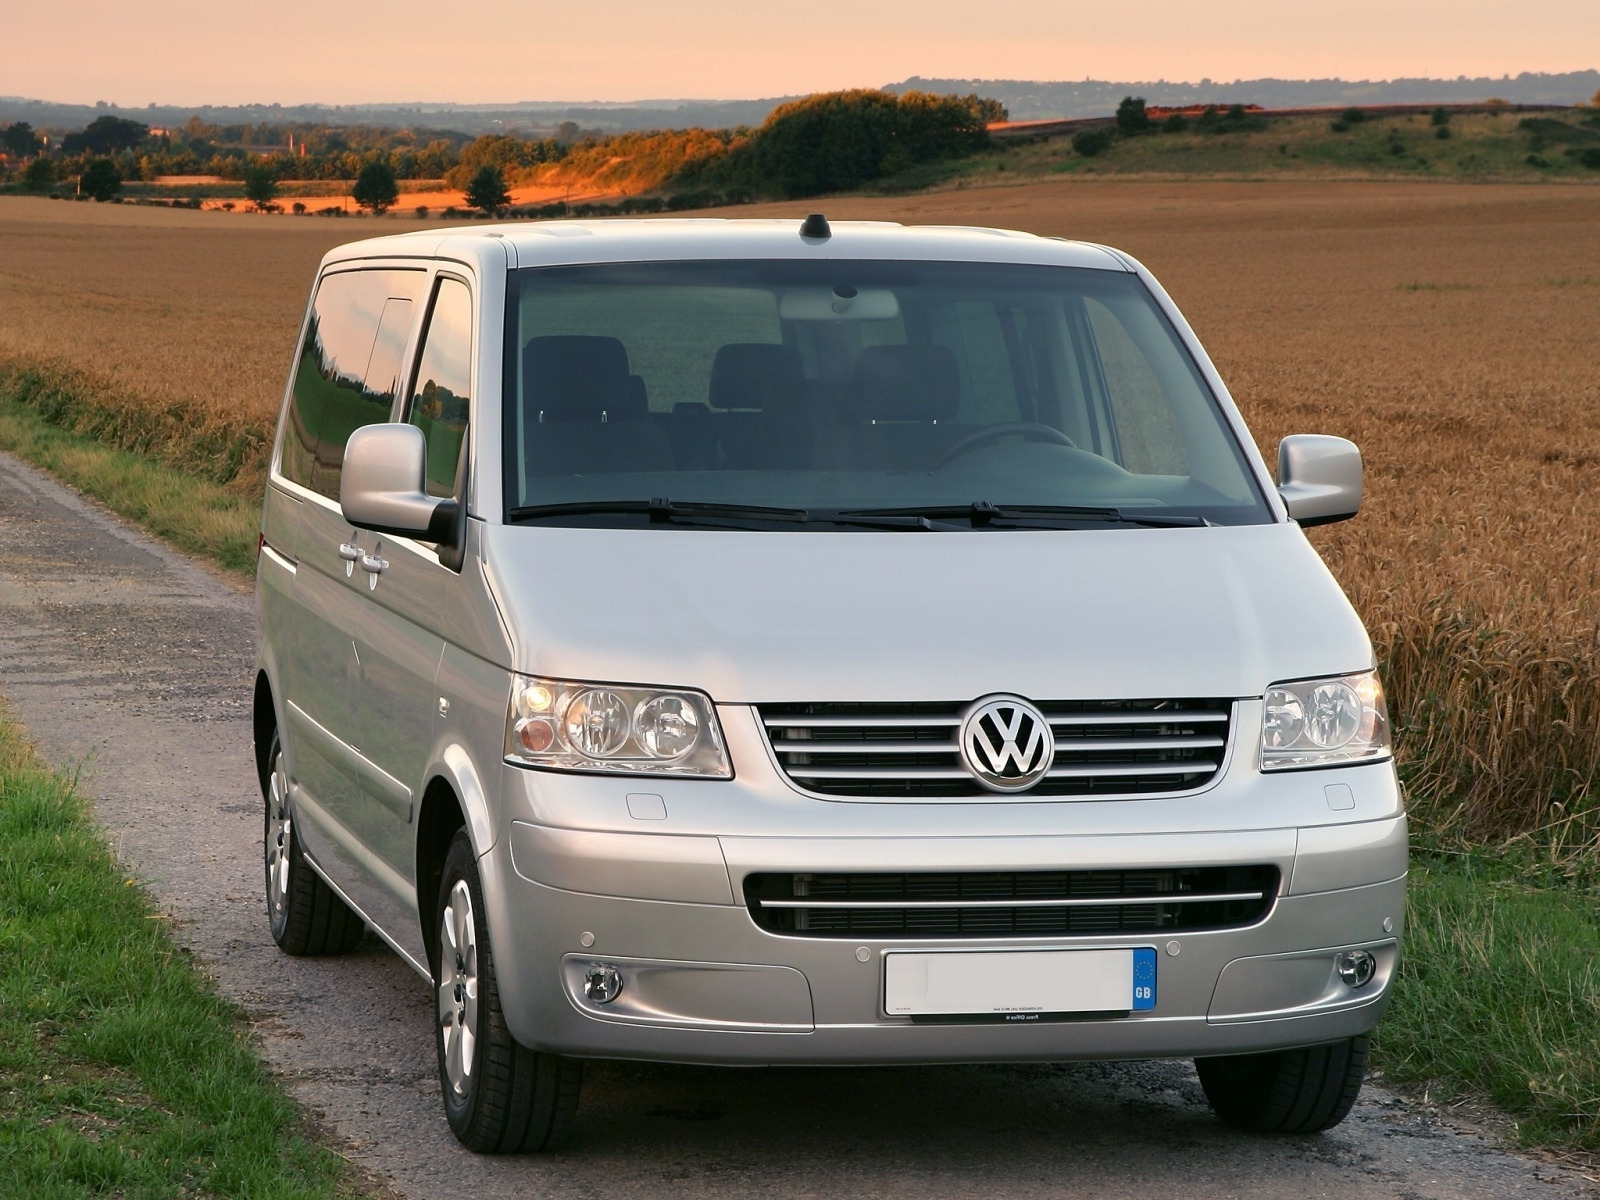 Volkswagen Caravelle 2.5 syncro фото 6